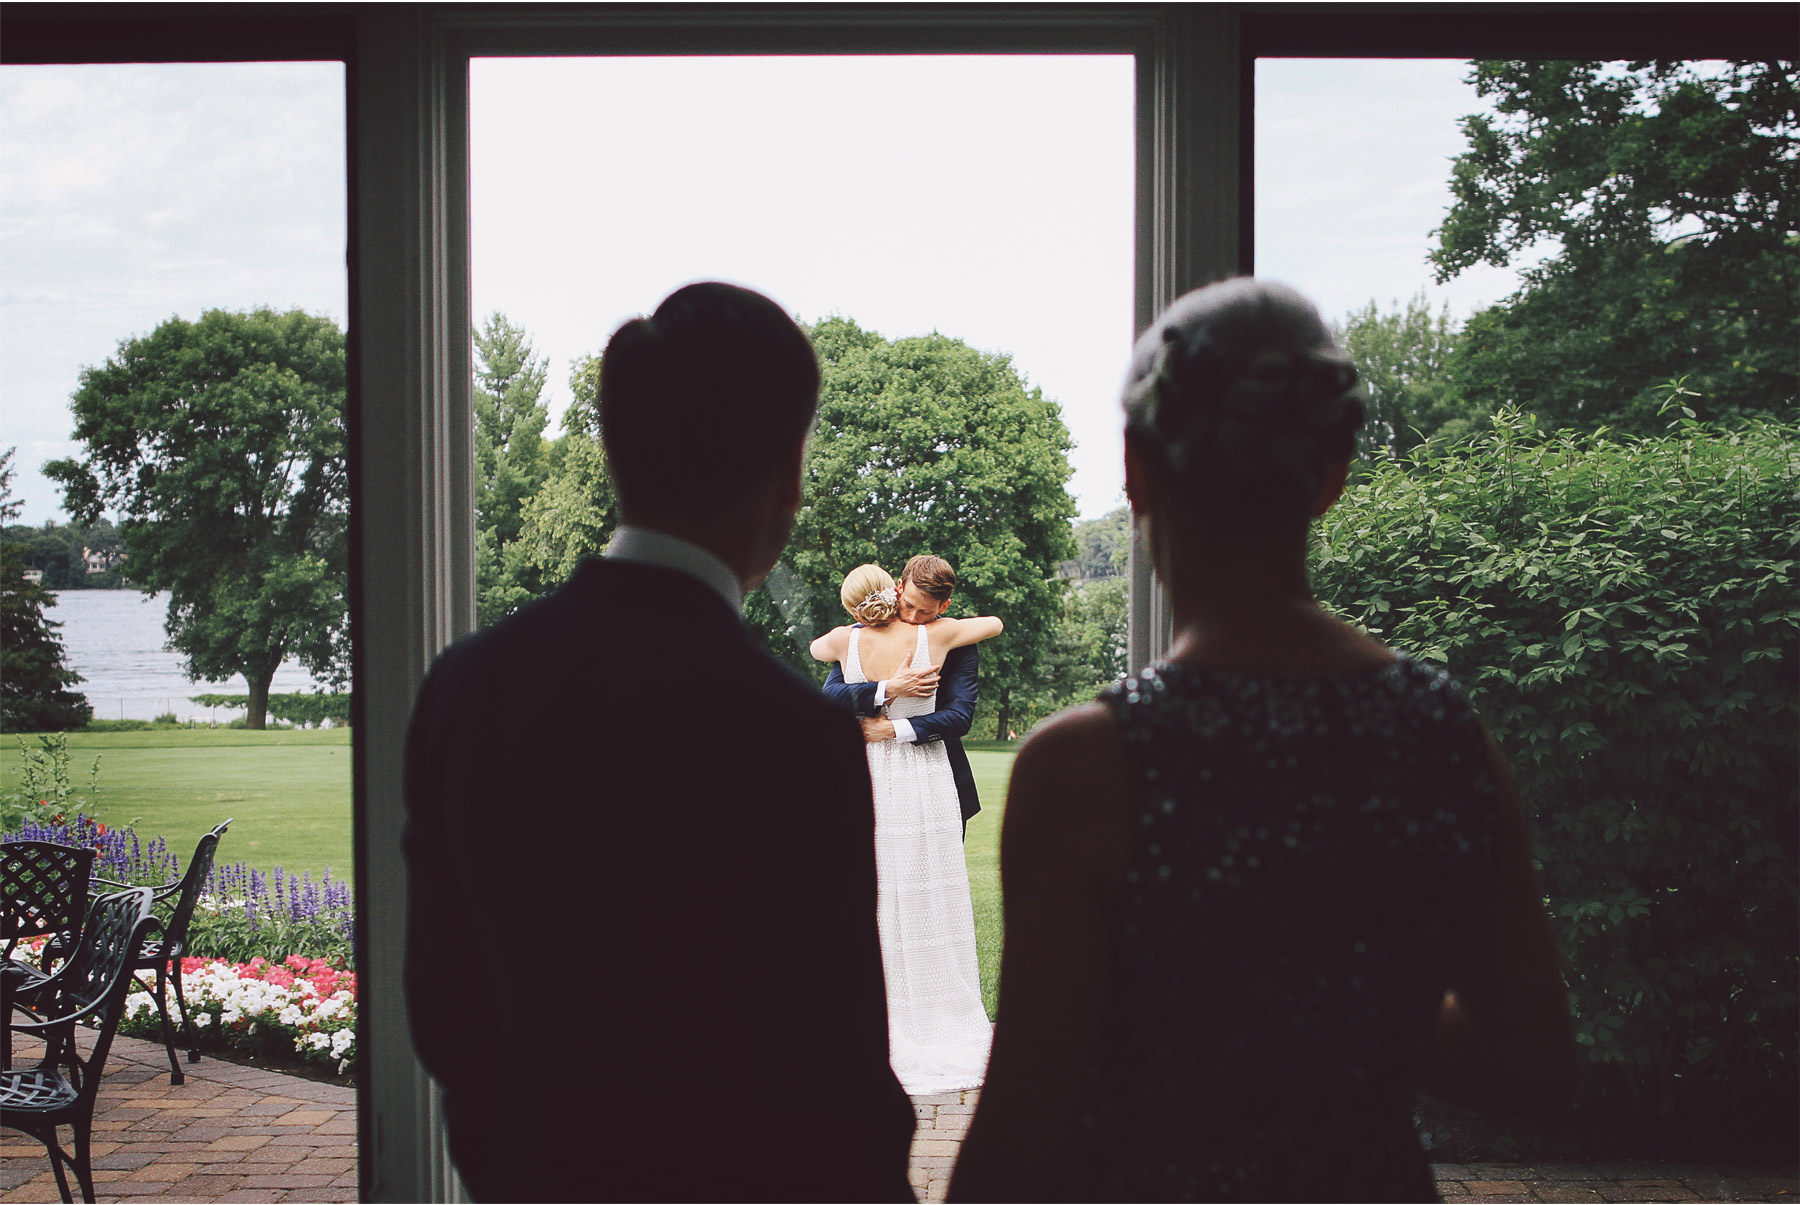 05-Minneapolis-Minnesota-Wedding-Photography-by-Vick-Photography-Lafayette-Club-First-Look-Maggie-and-Nicholas.jpg